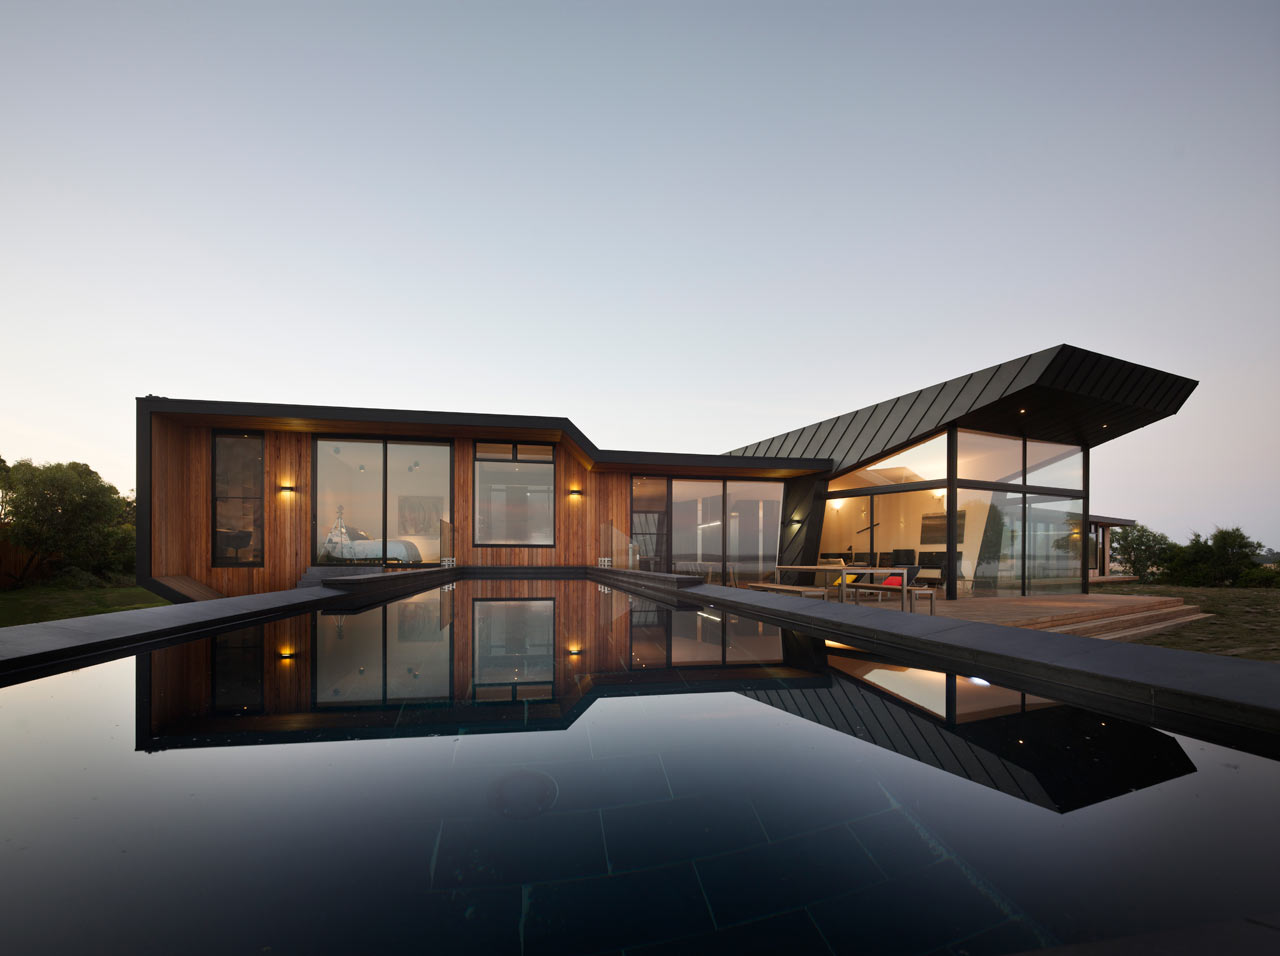 BKK-01-Beached-House-North-Facade-Peter-Bennetts